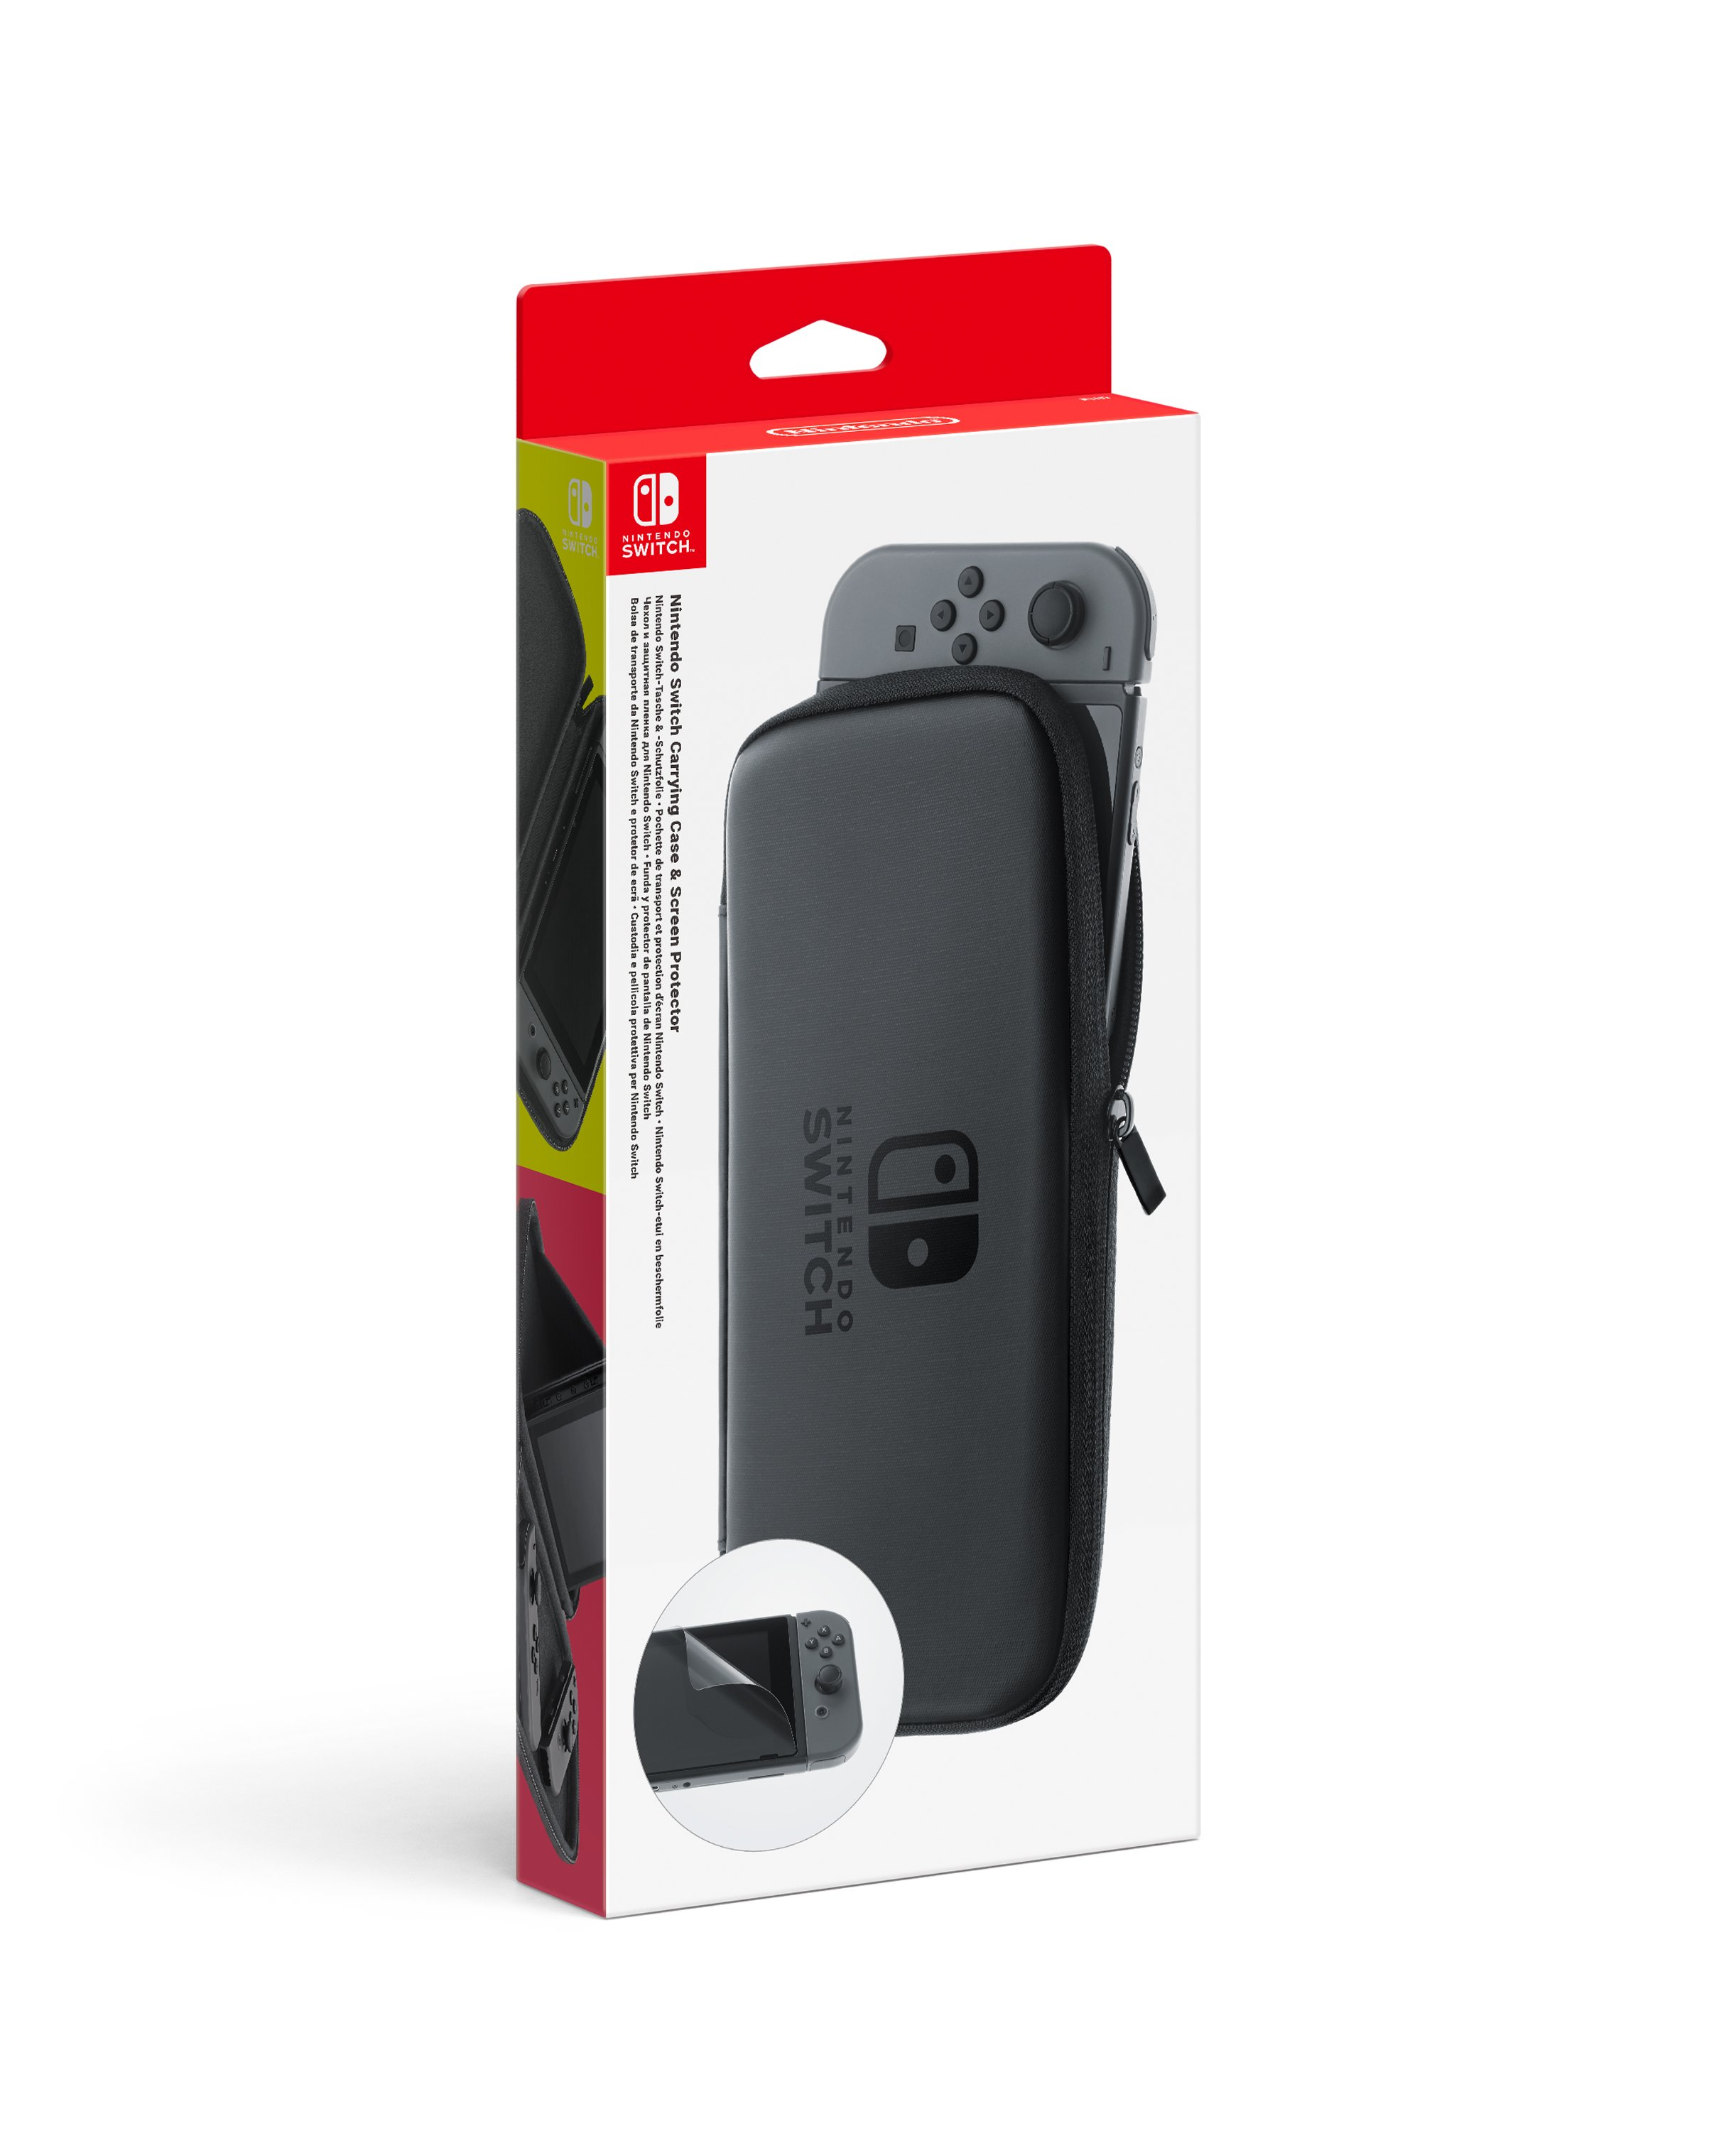 Nintendo Switch Accessory Set